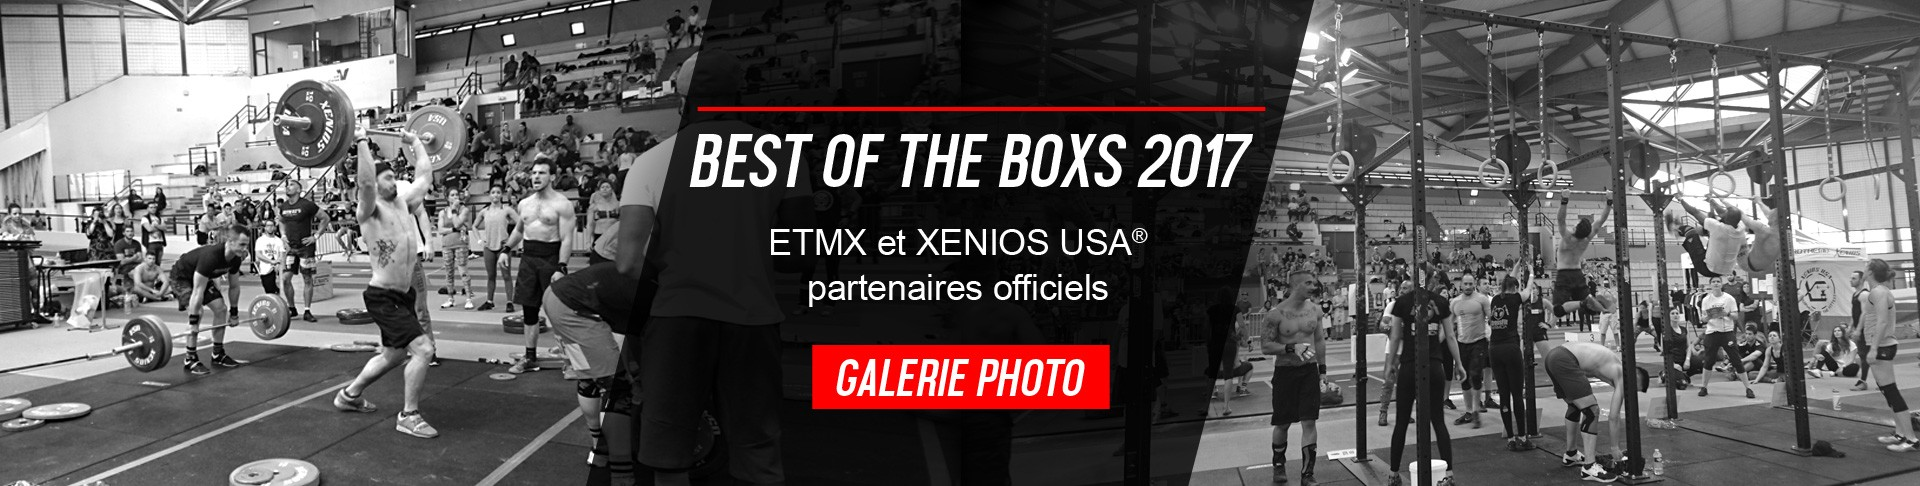 Galerie photo Best of the Boxs